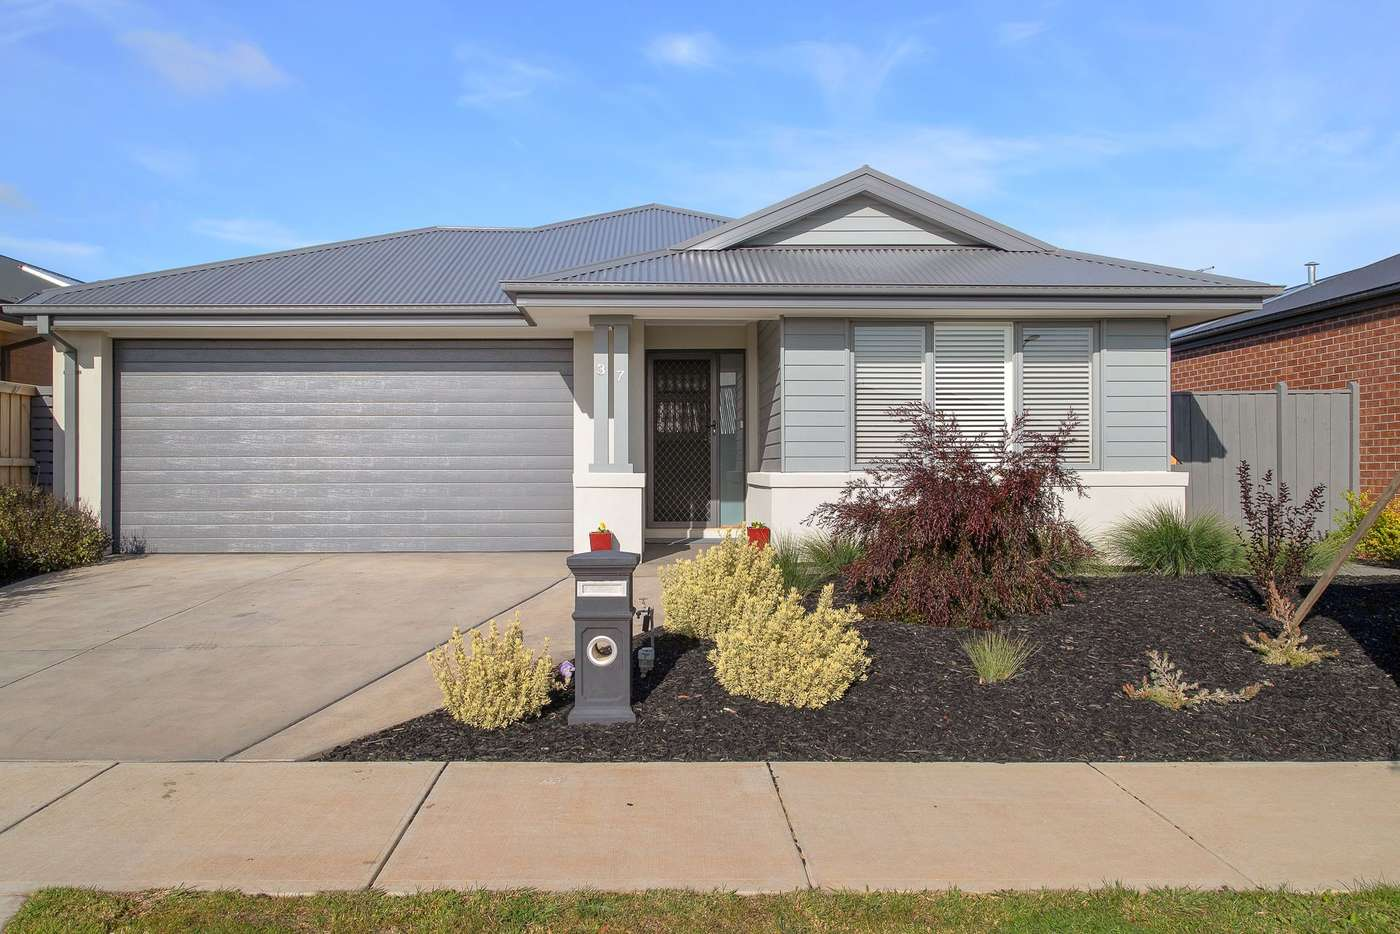 Main view of Homely house listing, 37 Seacrest Drive, Cowes VIC 3922